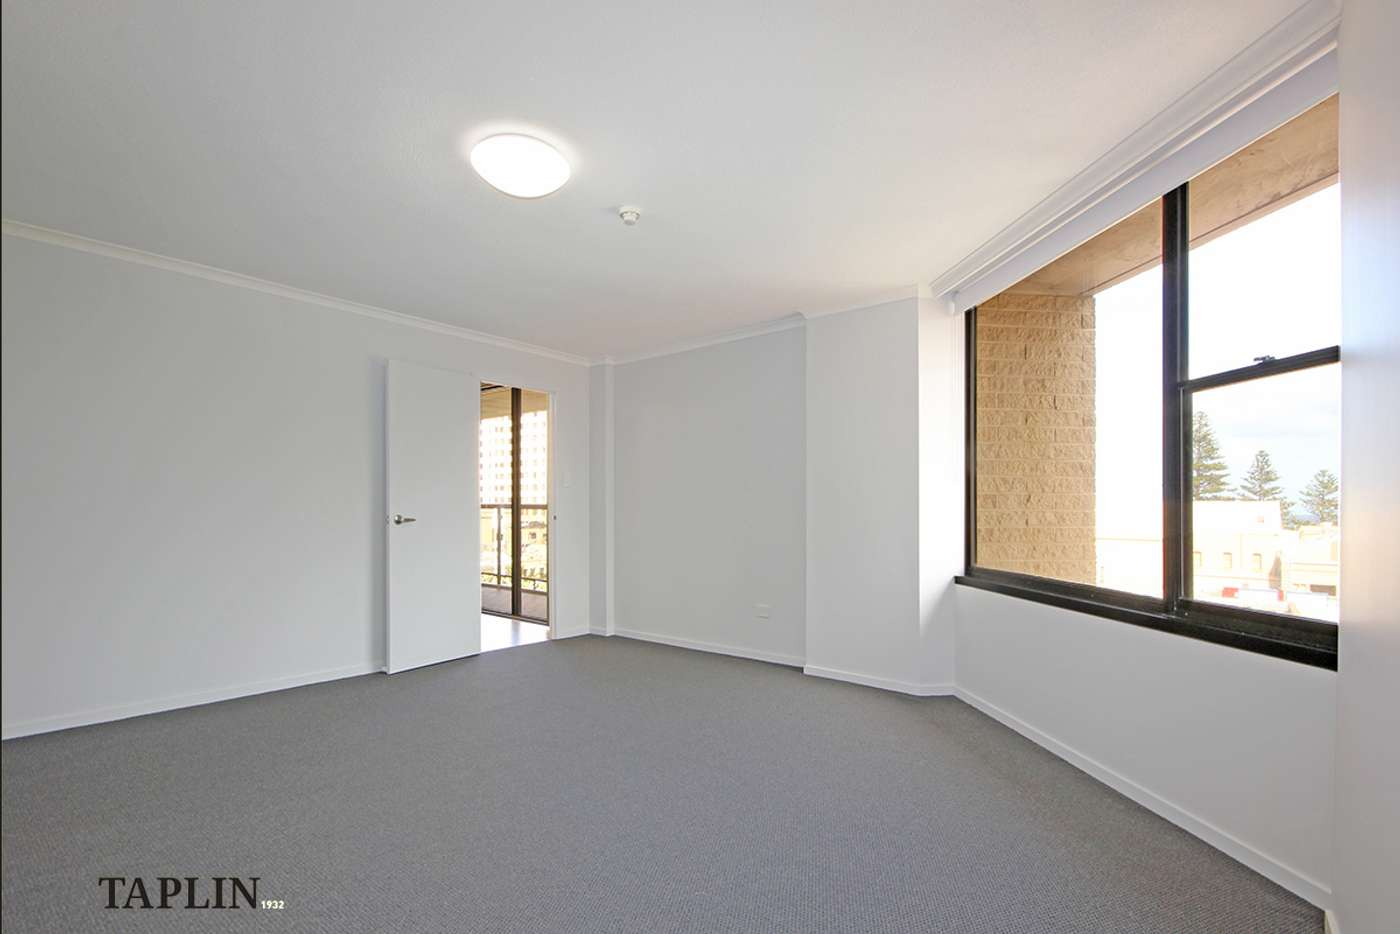 Sixth view of Homely apartment listing, 52/5-11 Colley Terrace, Glenelg SA 5045